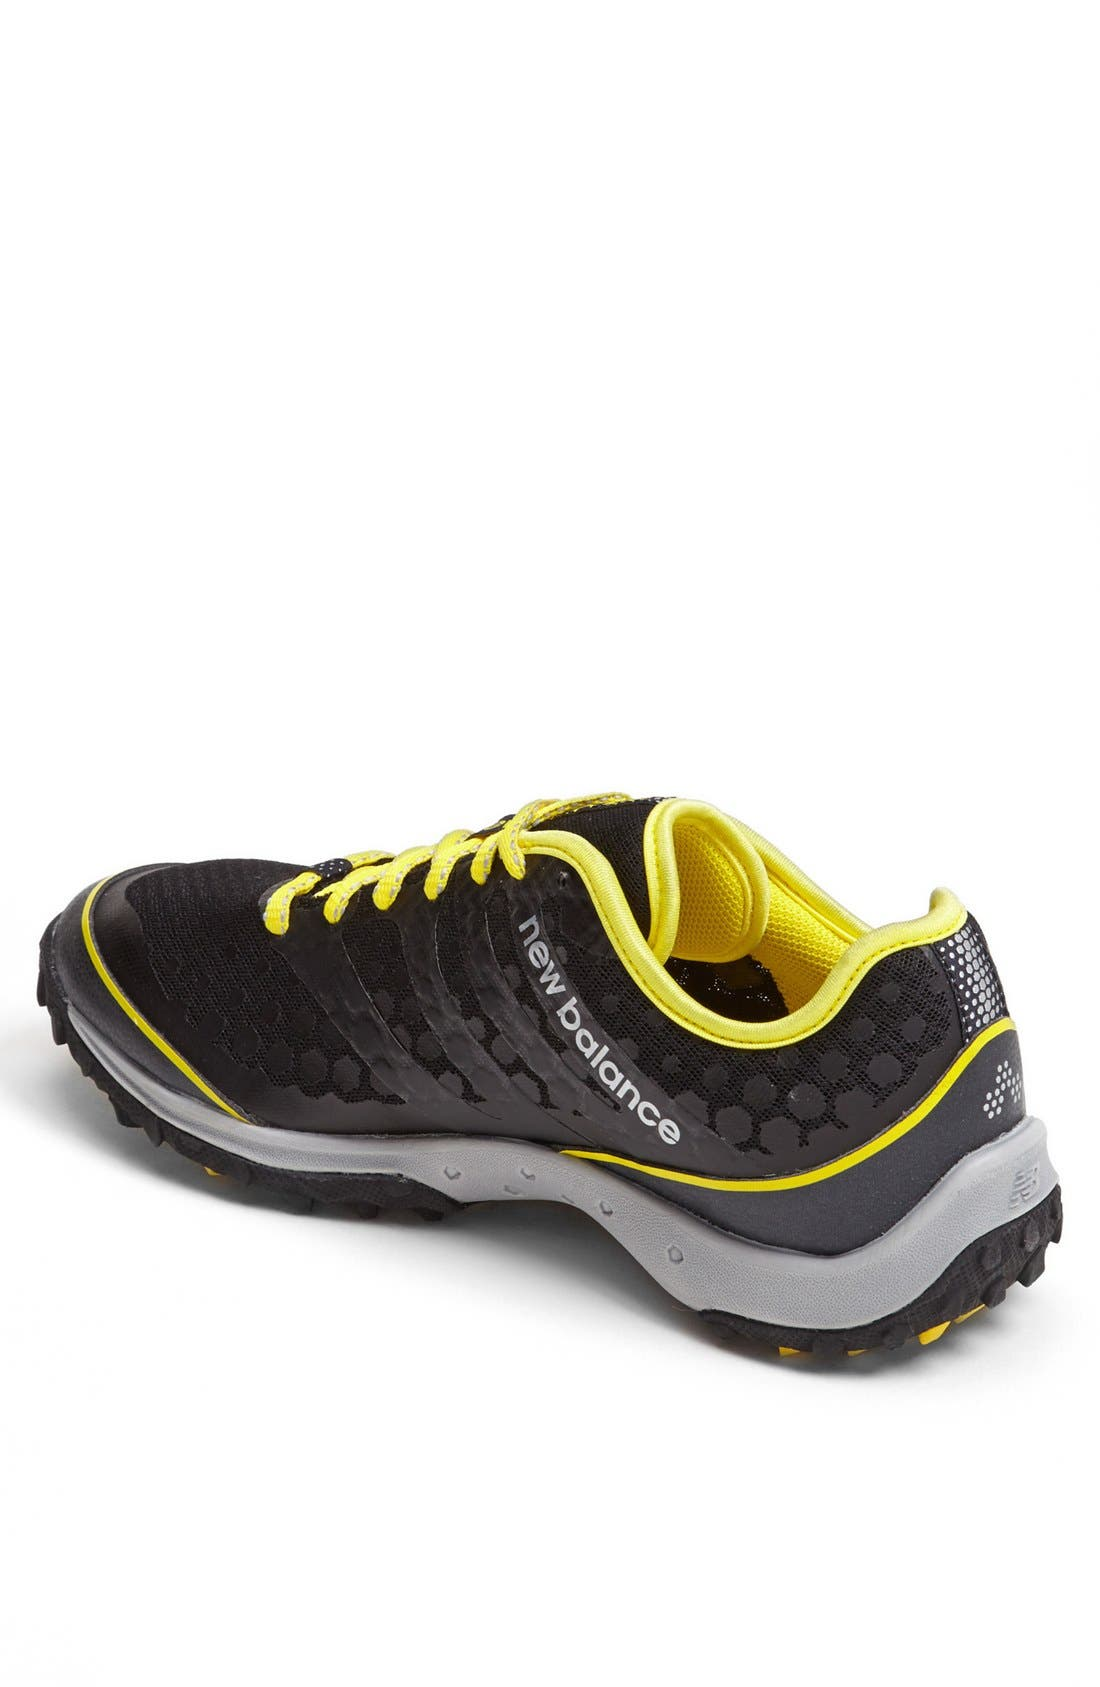 'Minimus 1690' Trail Running Shoe,                             Alternate thumbnail 2, color,                             006